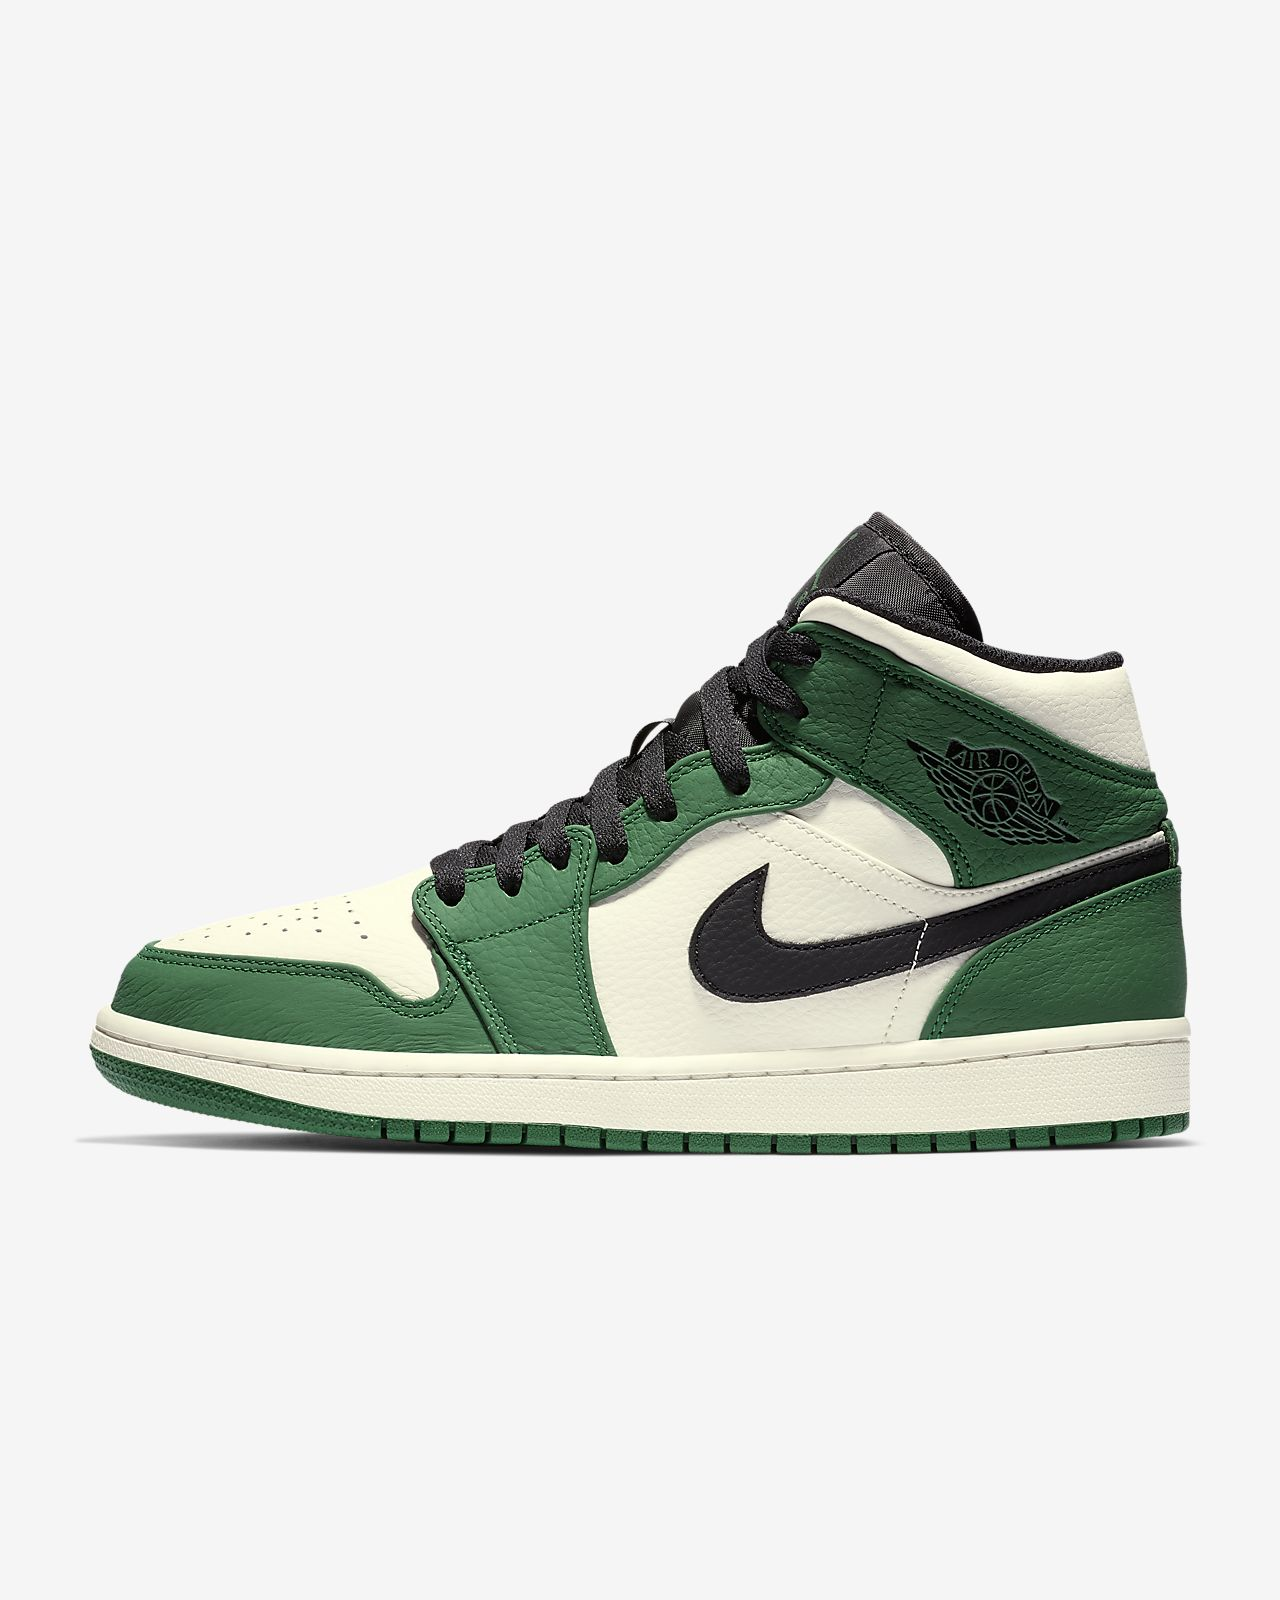 b55aebdd36f4 Air Jordan 1 Mid SE Men s Shoe. Nike.com